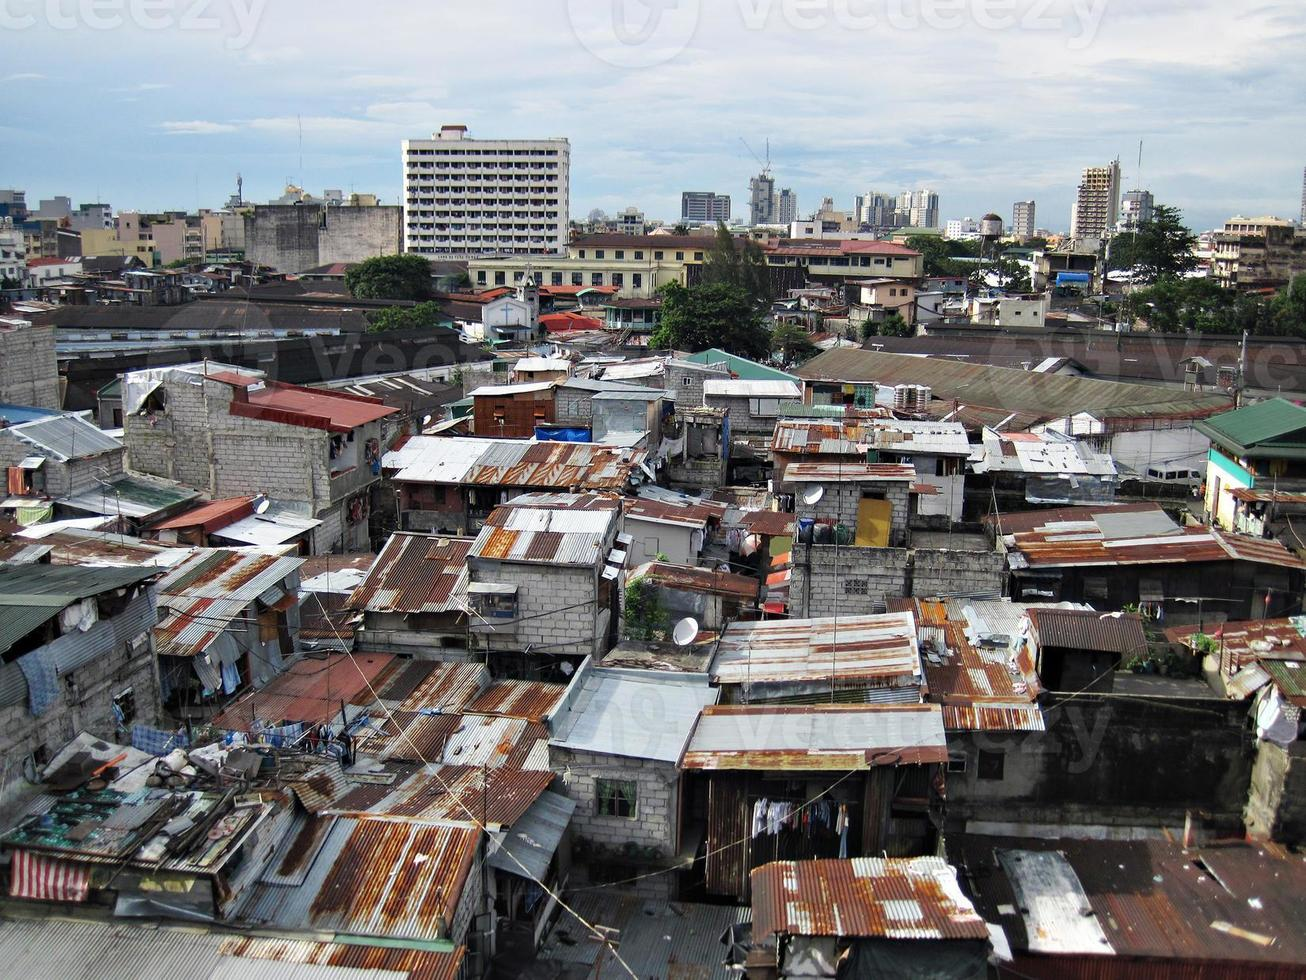 Squatter Shacks and Houses in a Slum Urban Area photo